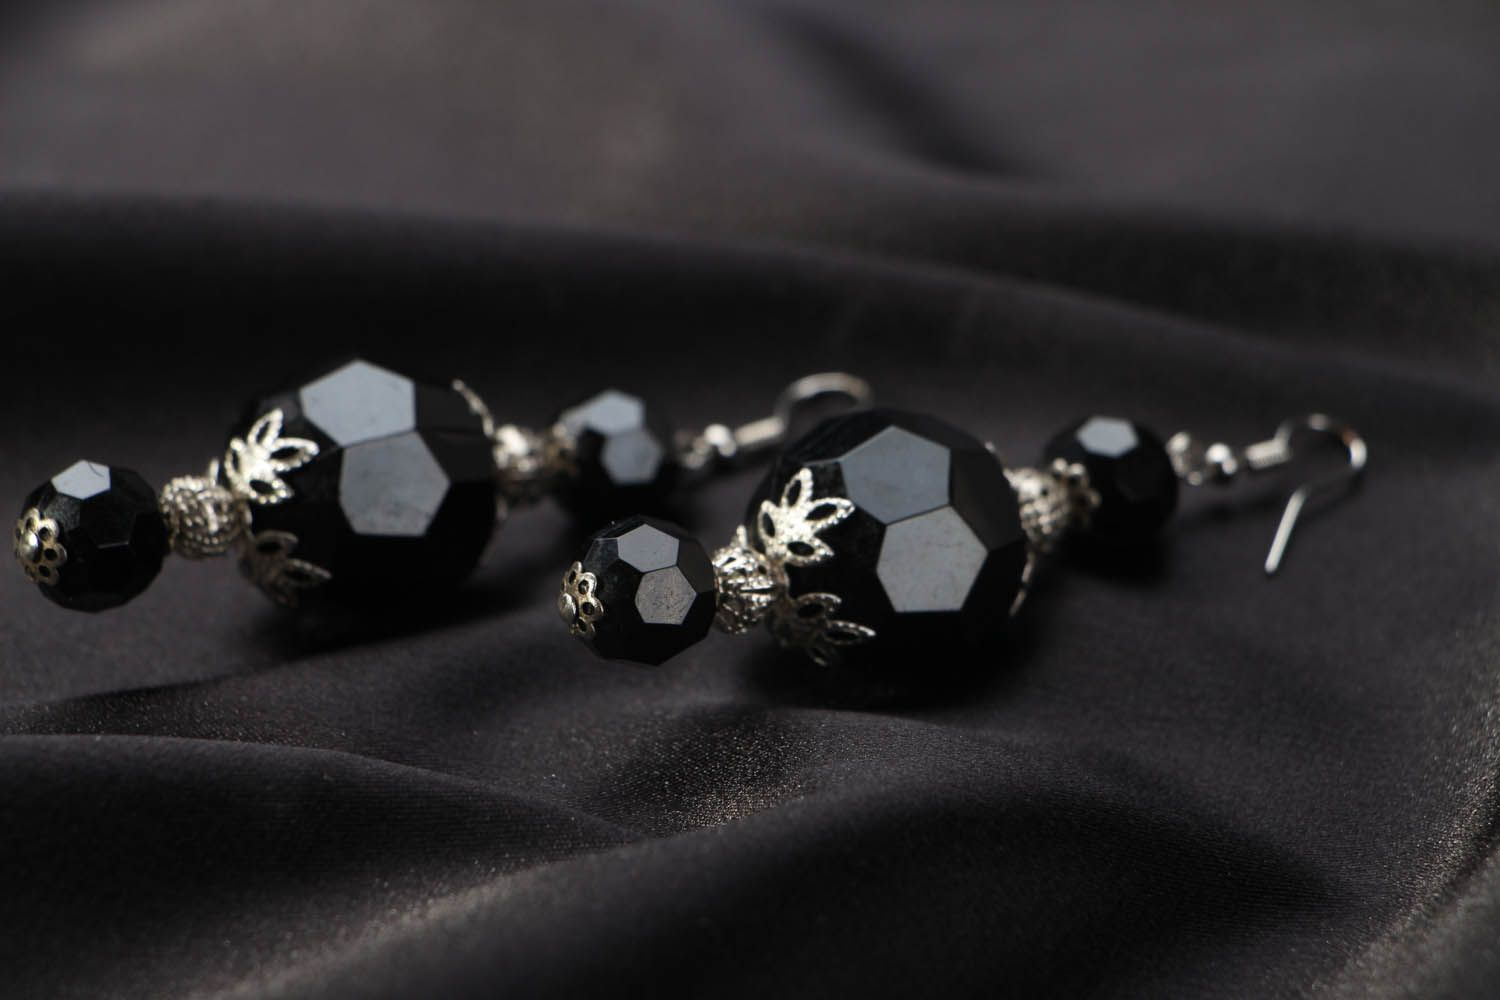 Earrings with large black beads photo 2